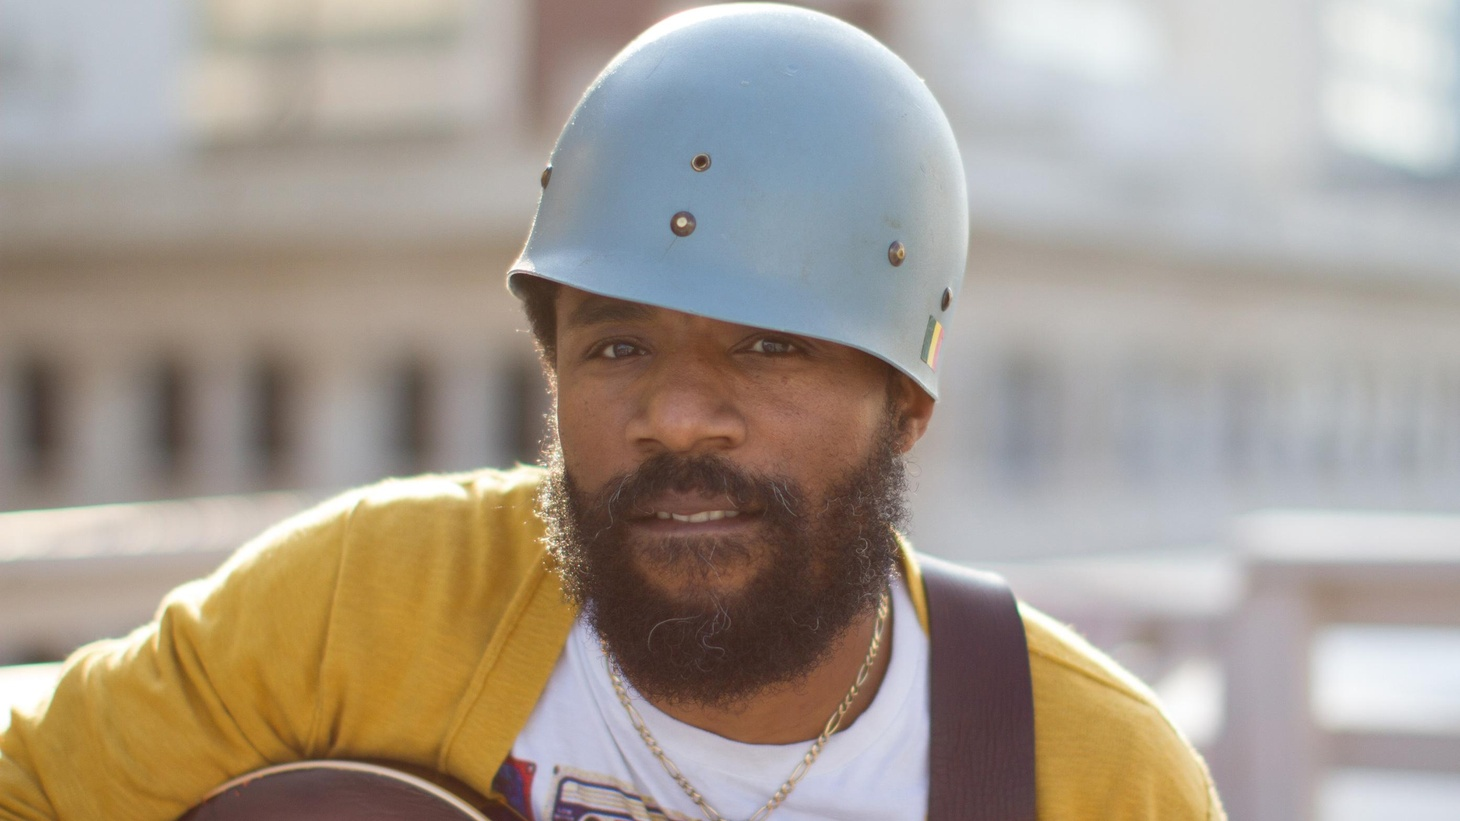 Soul troubadour Cody ChestnuTT teams up with killer guitarist Gary Clark Jr as they sizzle through Today's Top Tune.